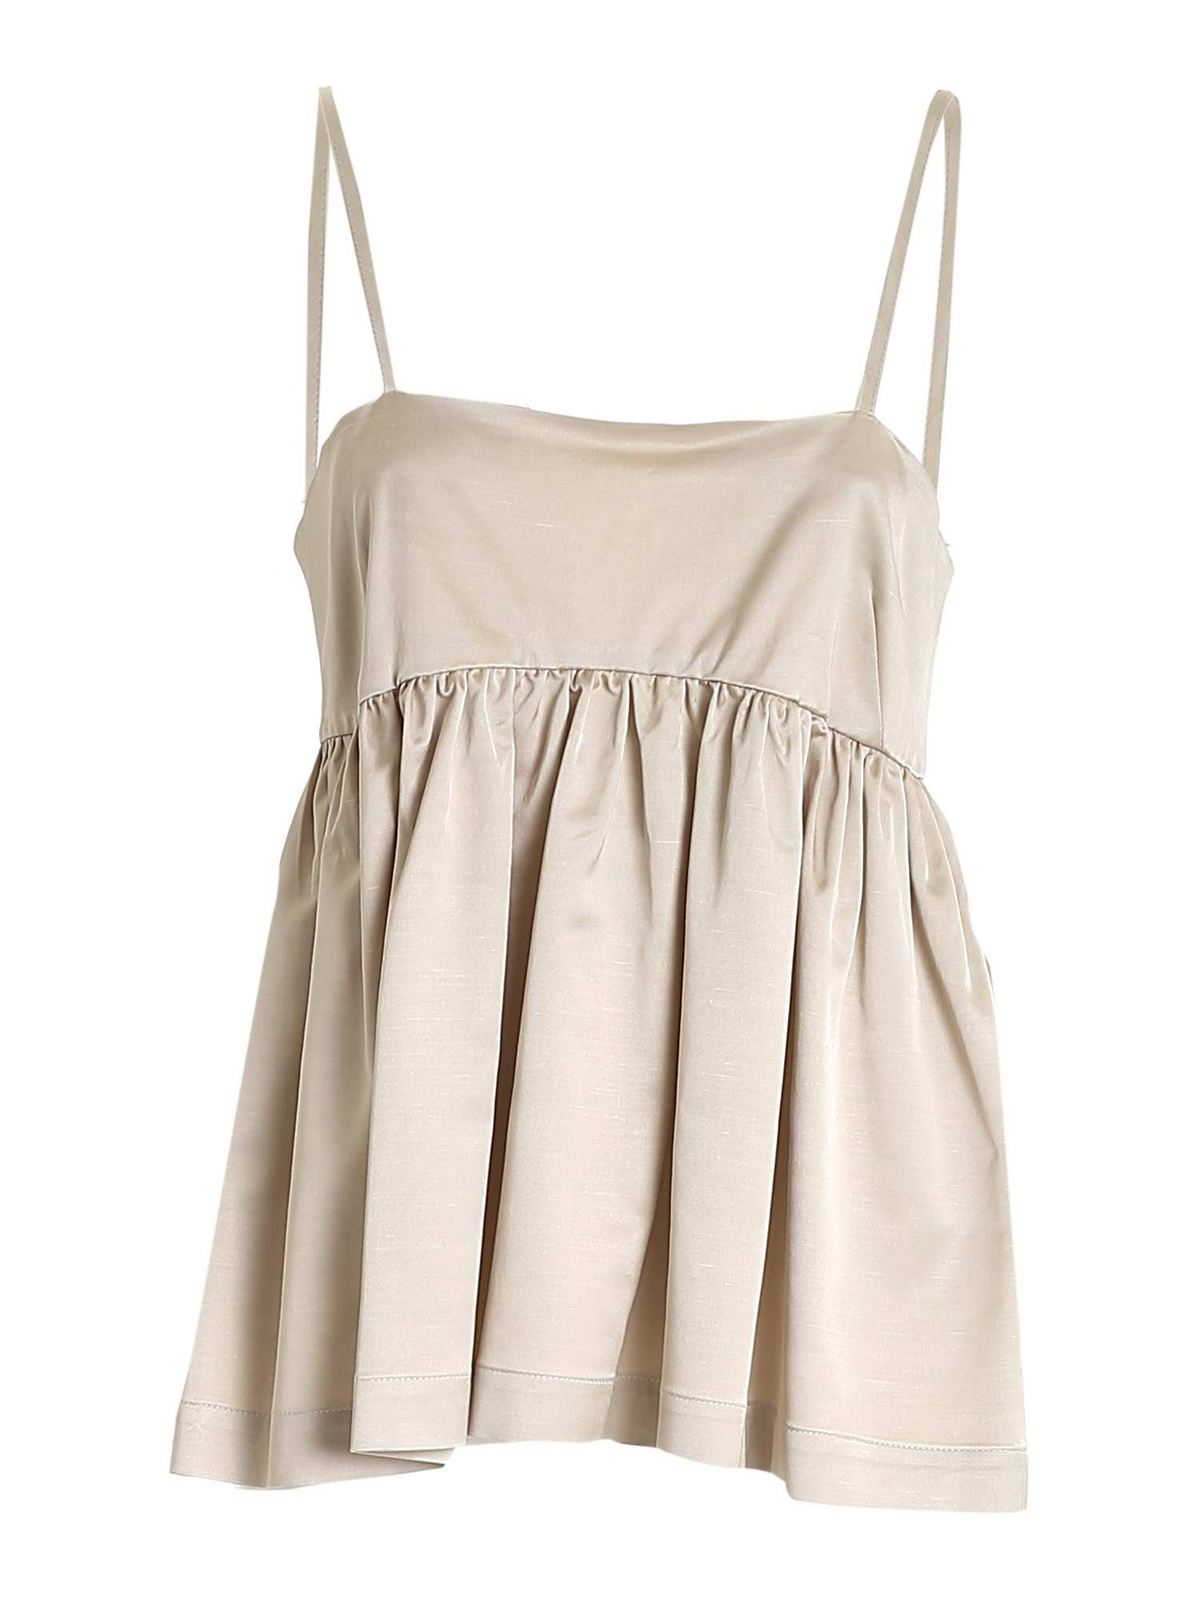 Semicouture JACOTTE TOP IN DOVE GREY